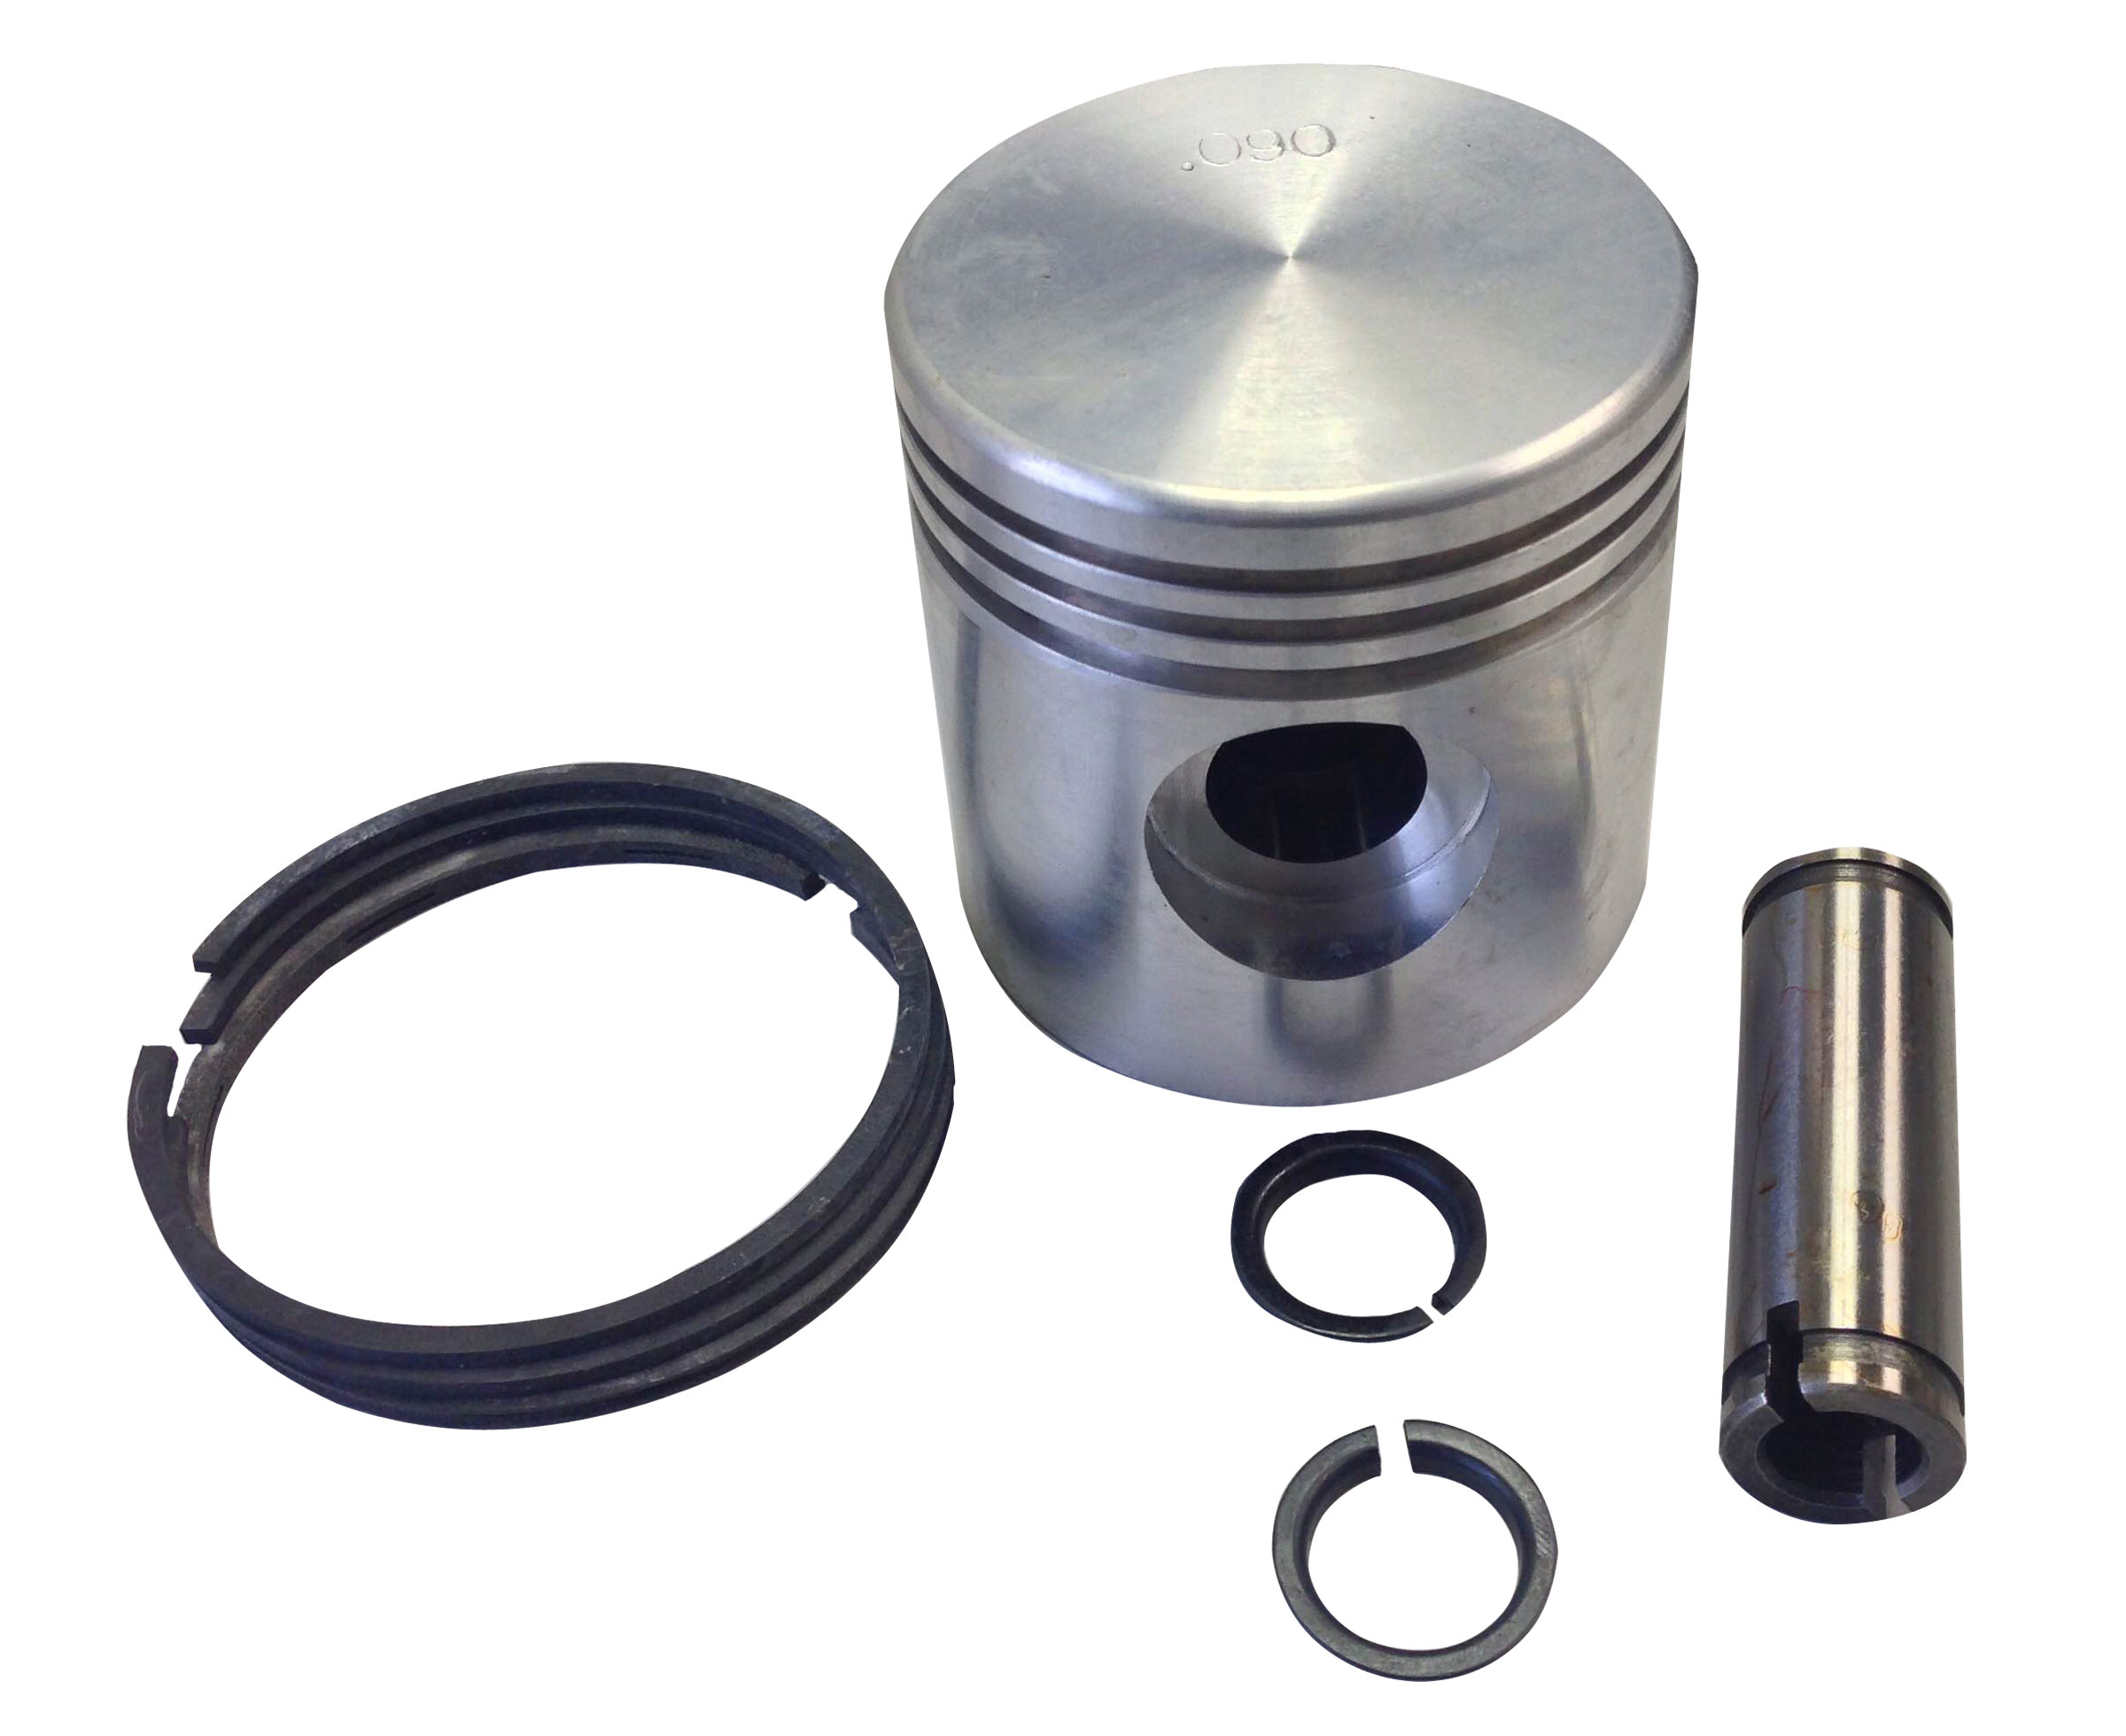 Complete Piston with Rings for Harley-Davidson 45s, WLA and Servi-Cars |  HD-45 | BMI Karts And Parts